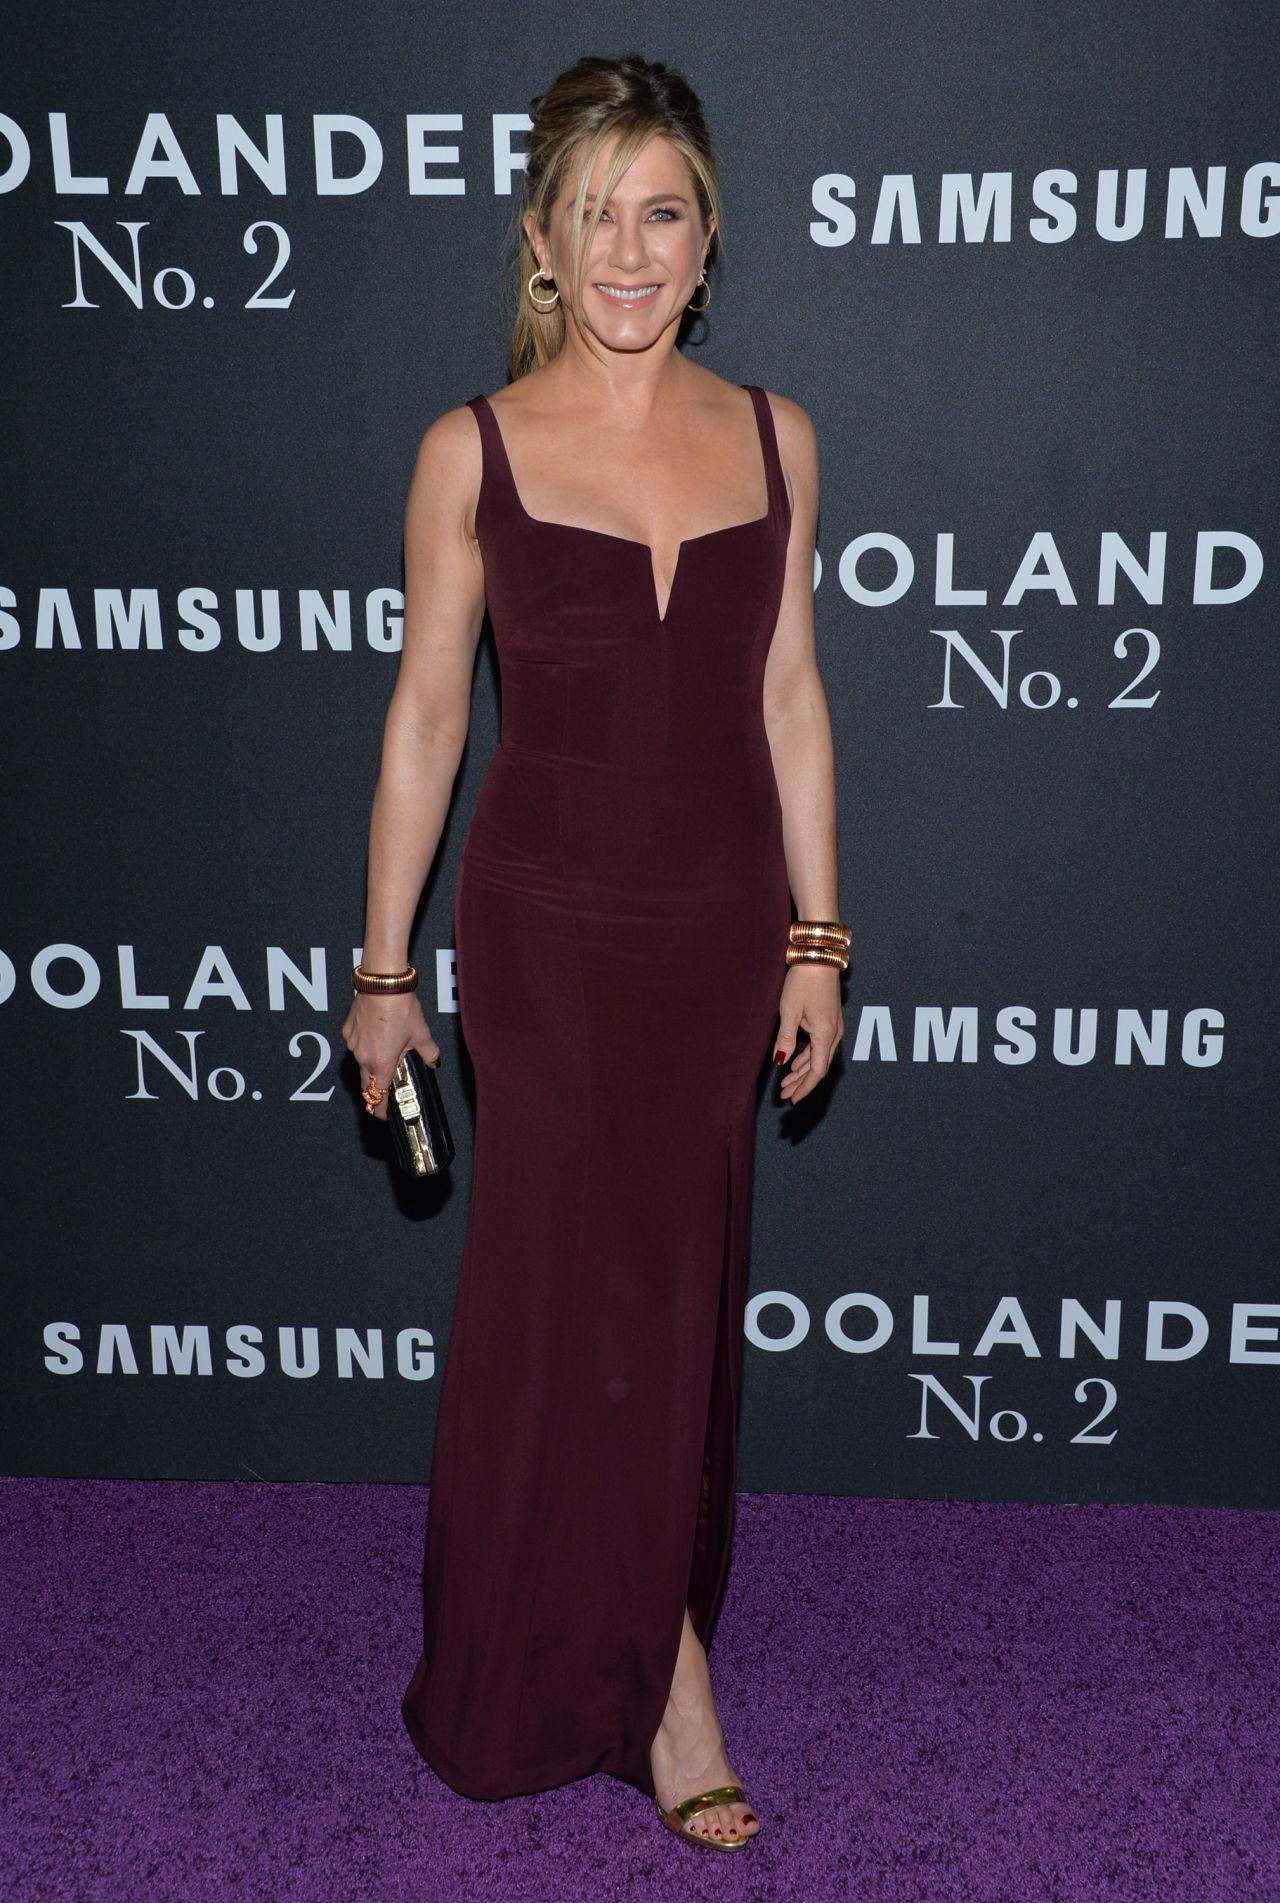 jennifer-aniston-zoolander-2-world-premiere-in-new-york-city-ny-2